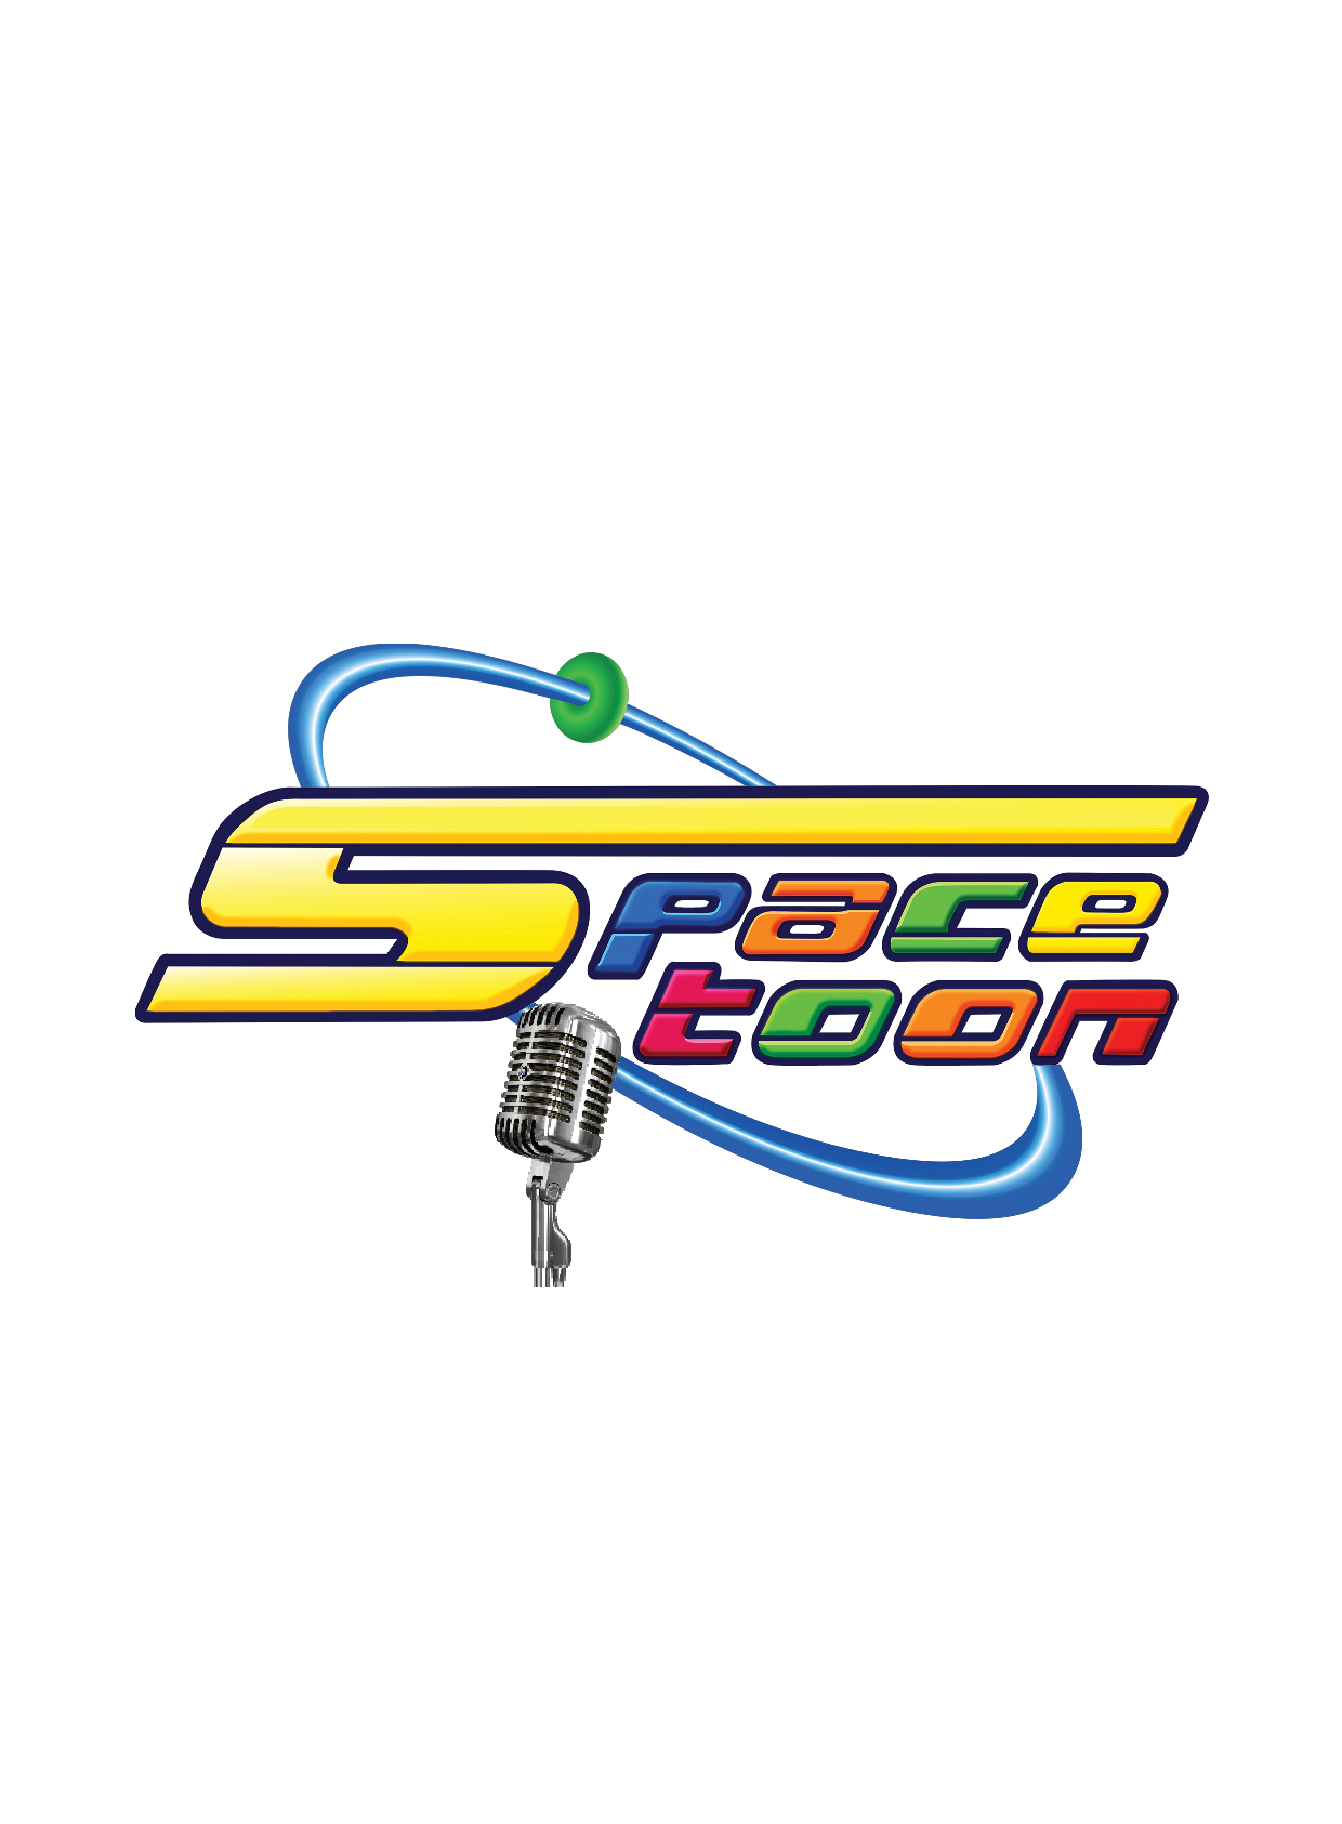 spacetoonreporter